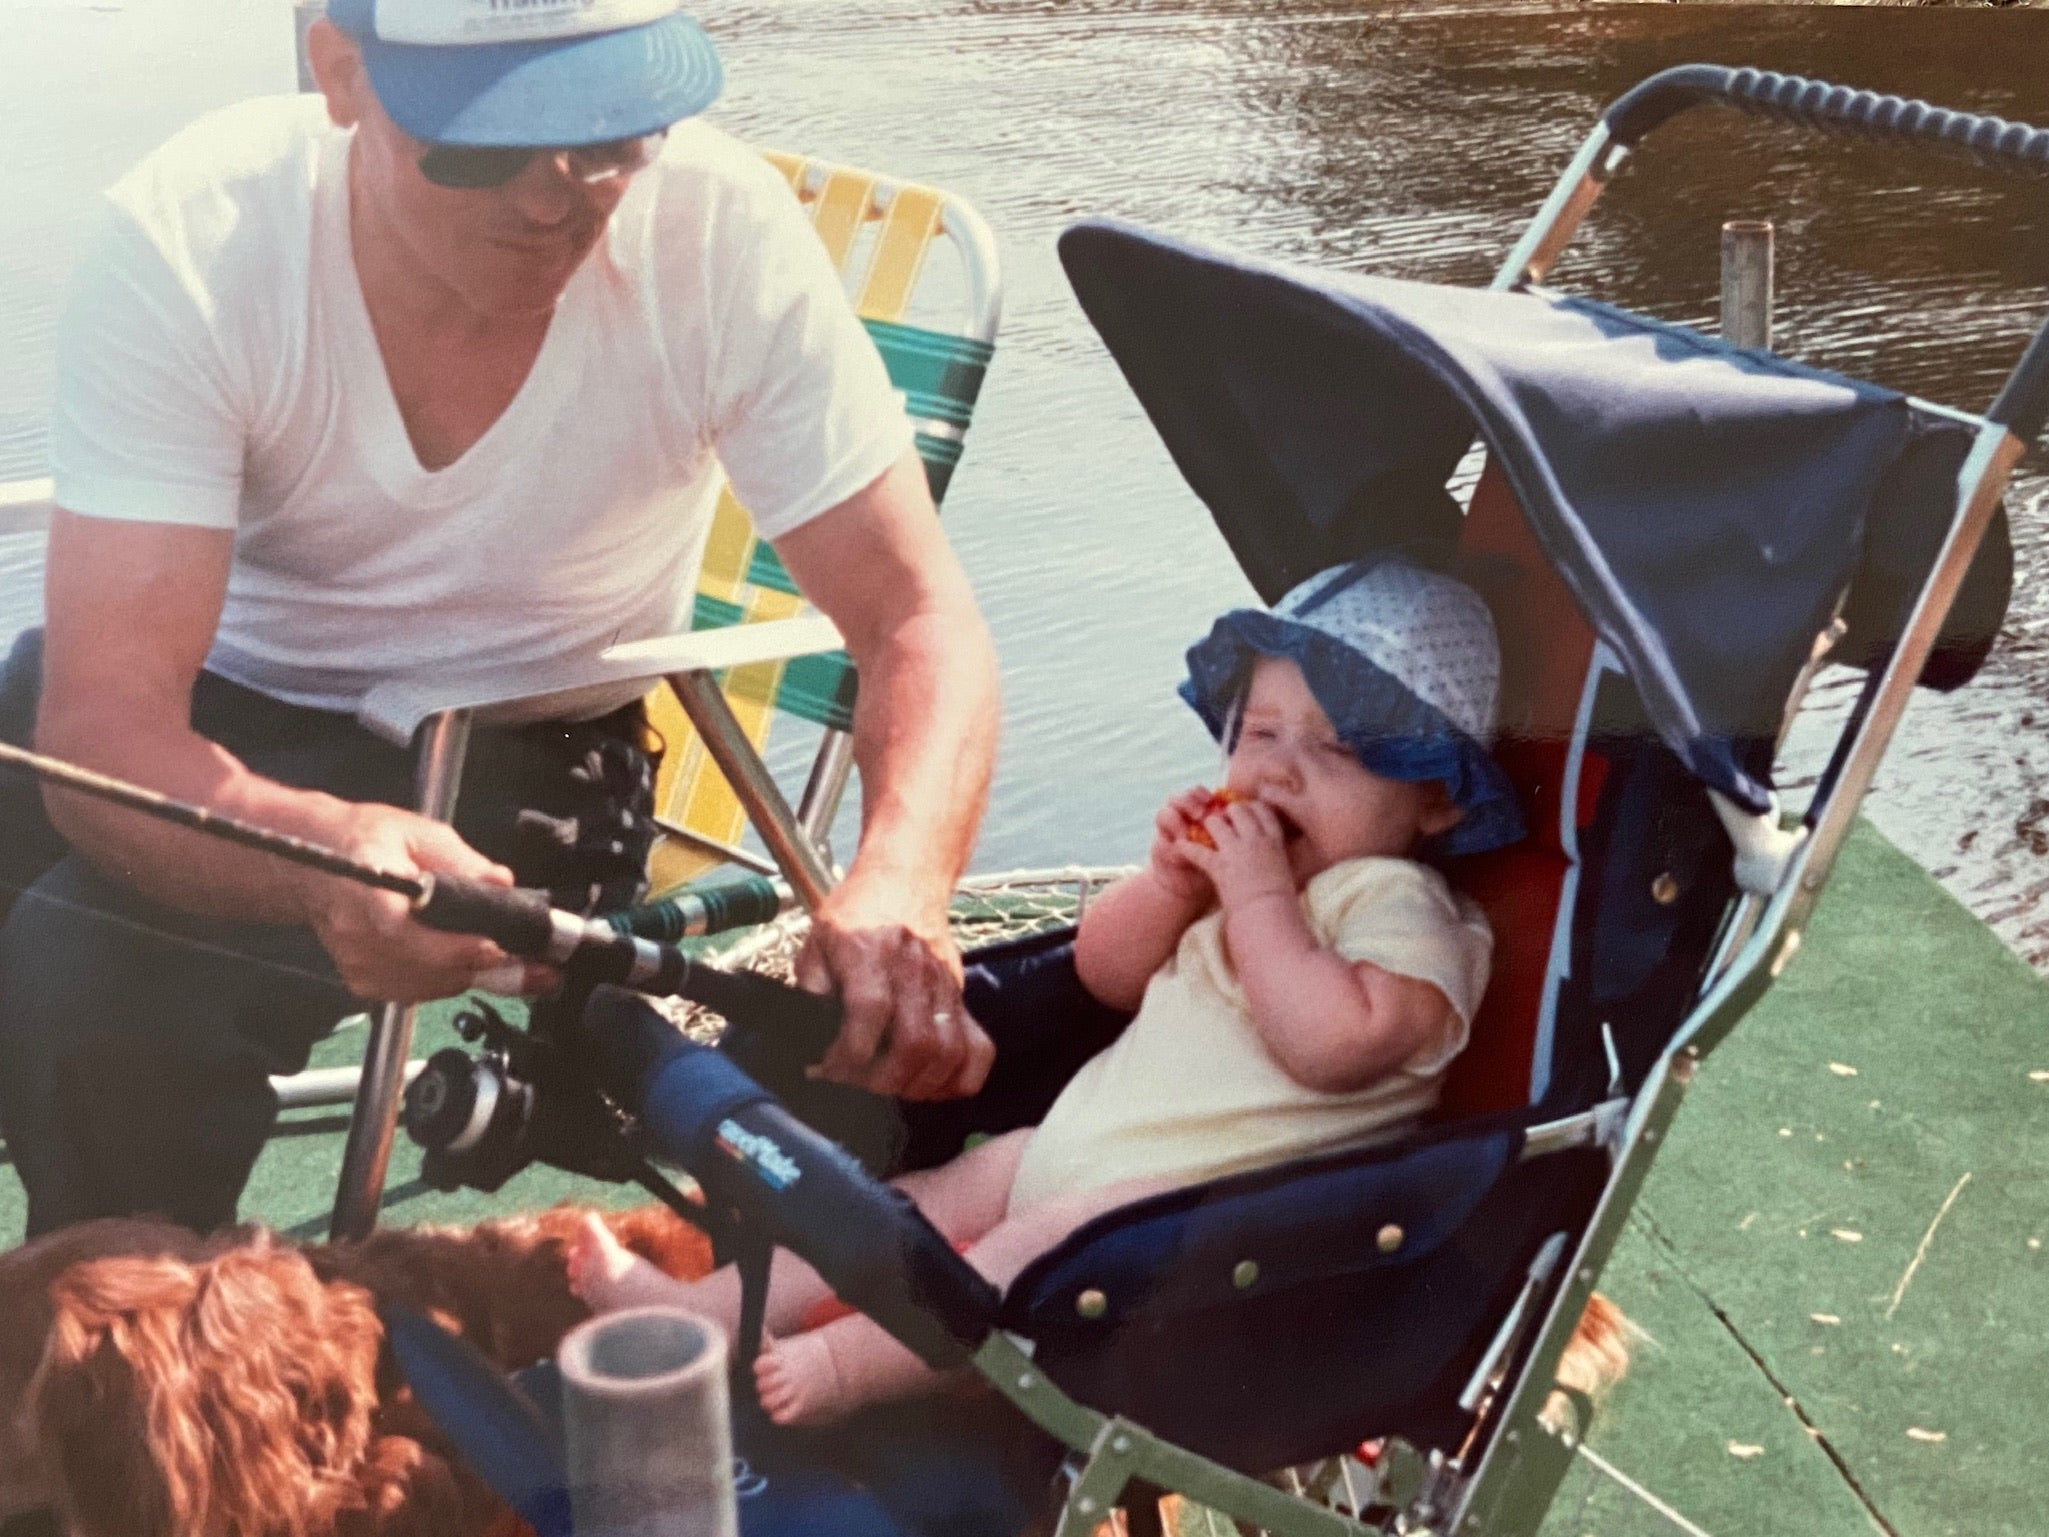 Young Becky in stroller